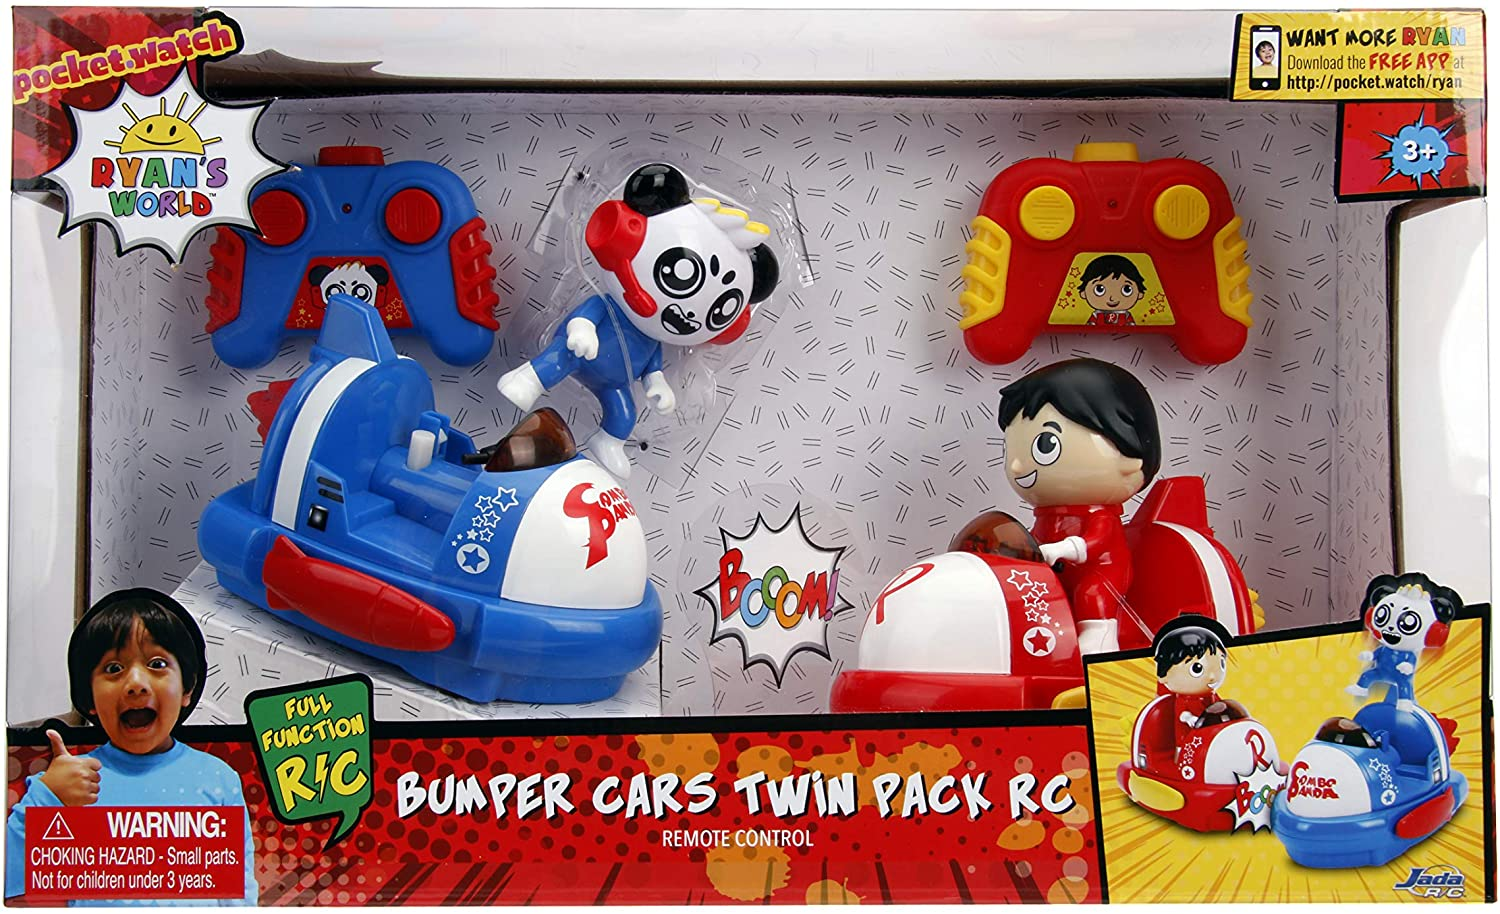 Ryans World Bumper Cars Twin Pack RC